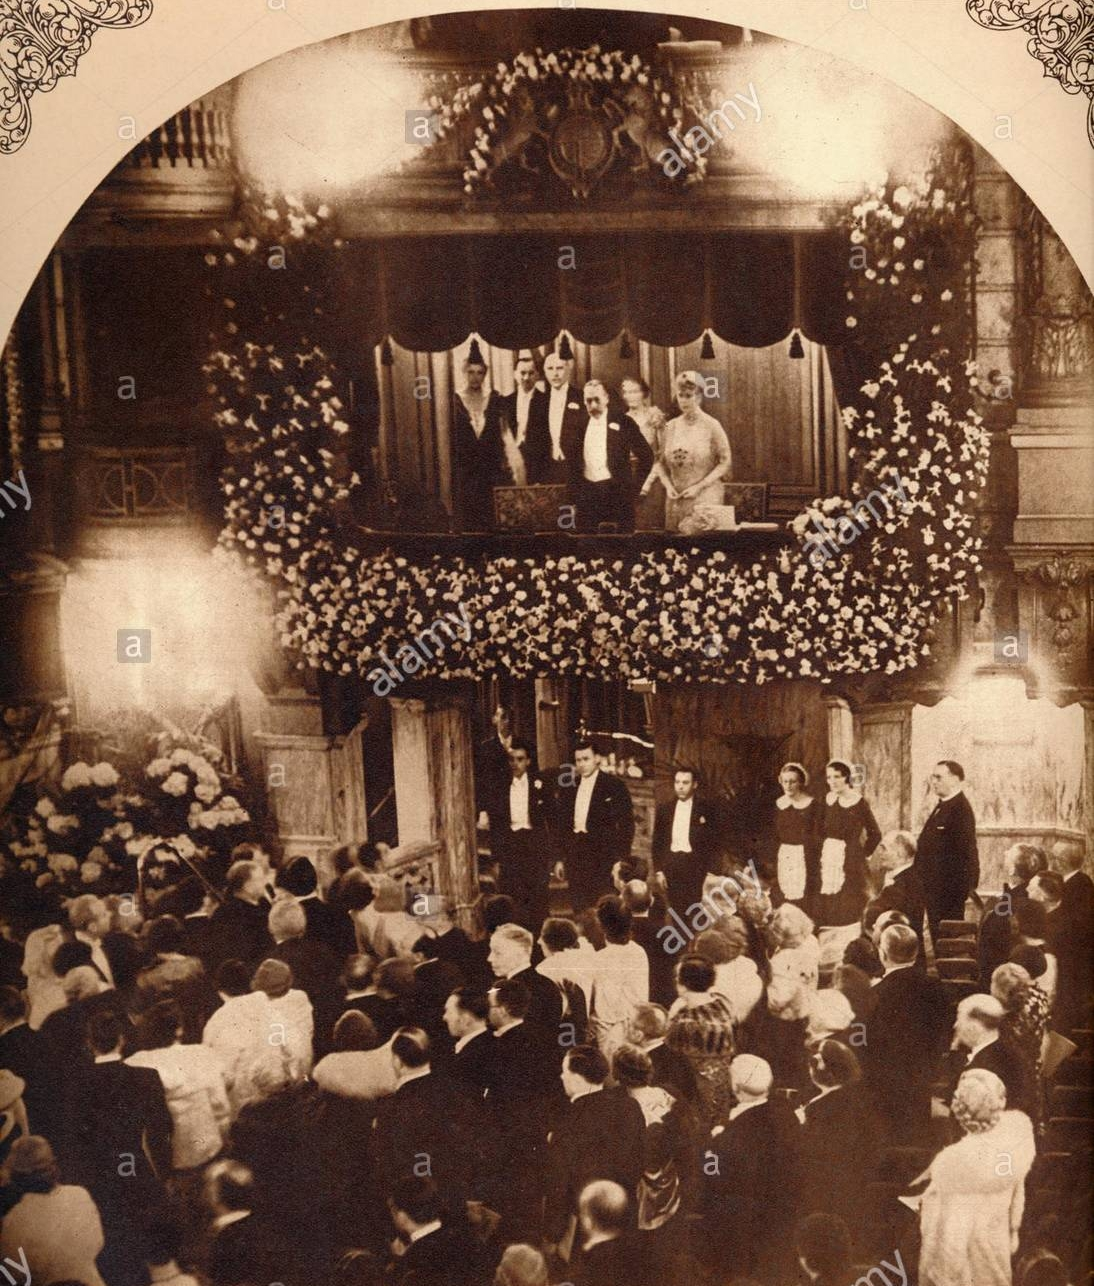 A rare photograph of the show during the 1930s with King George V and Queen Mary, when it was called the Royal Command Performance.